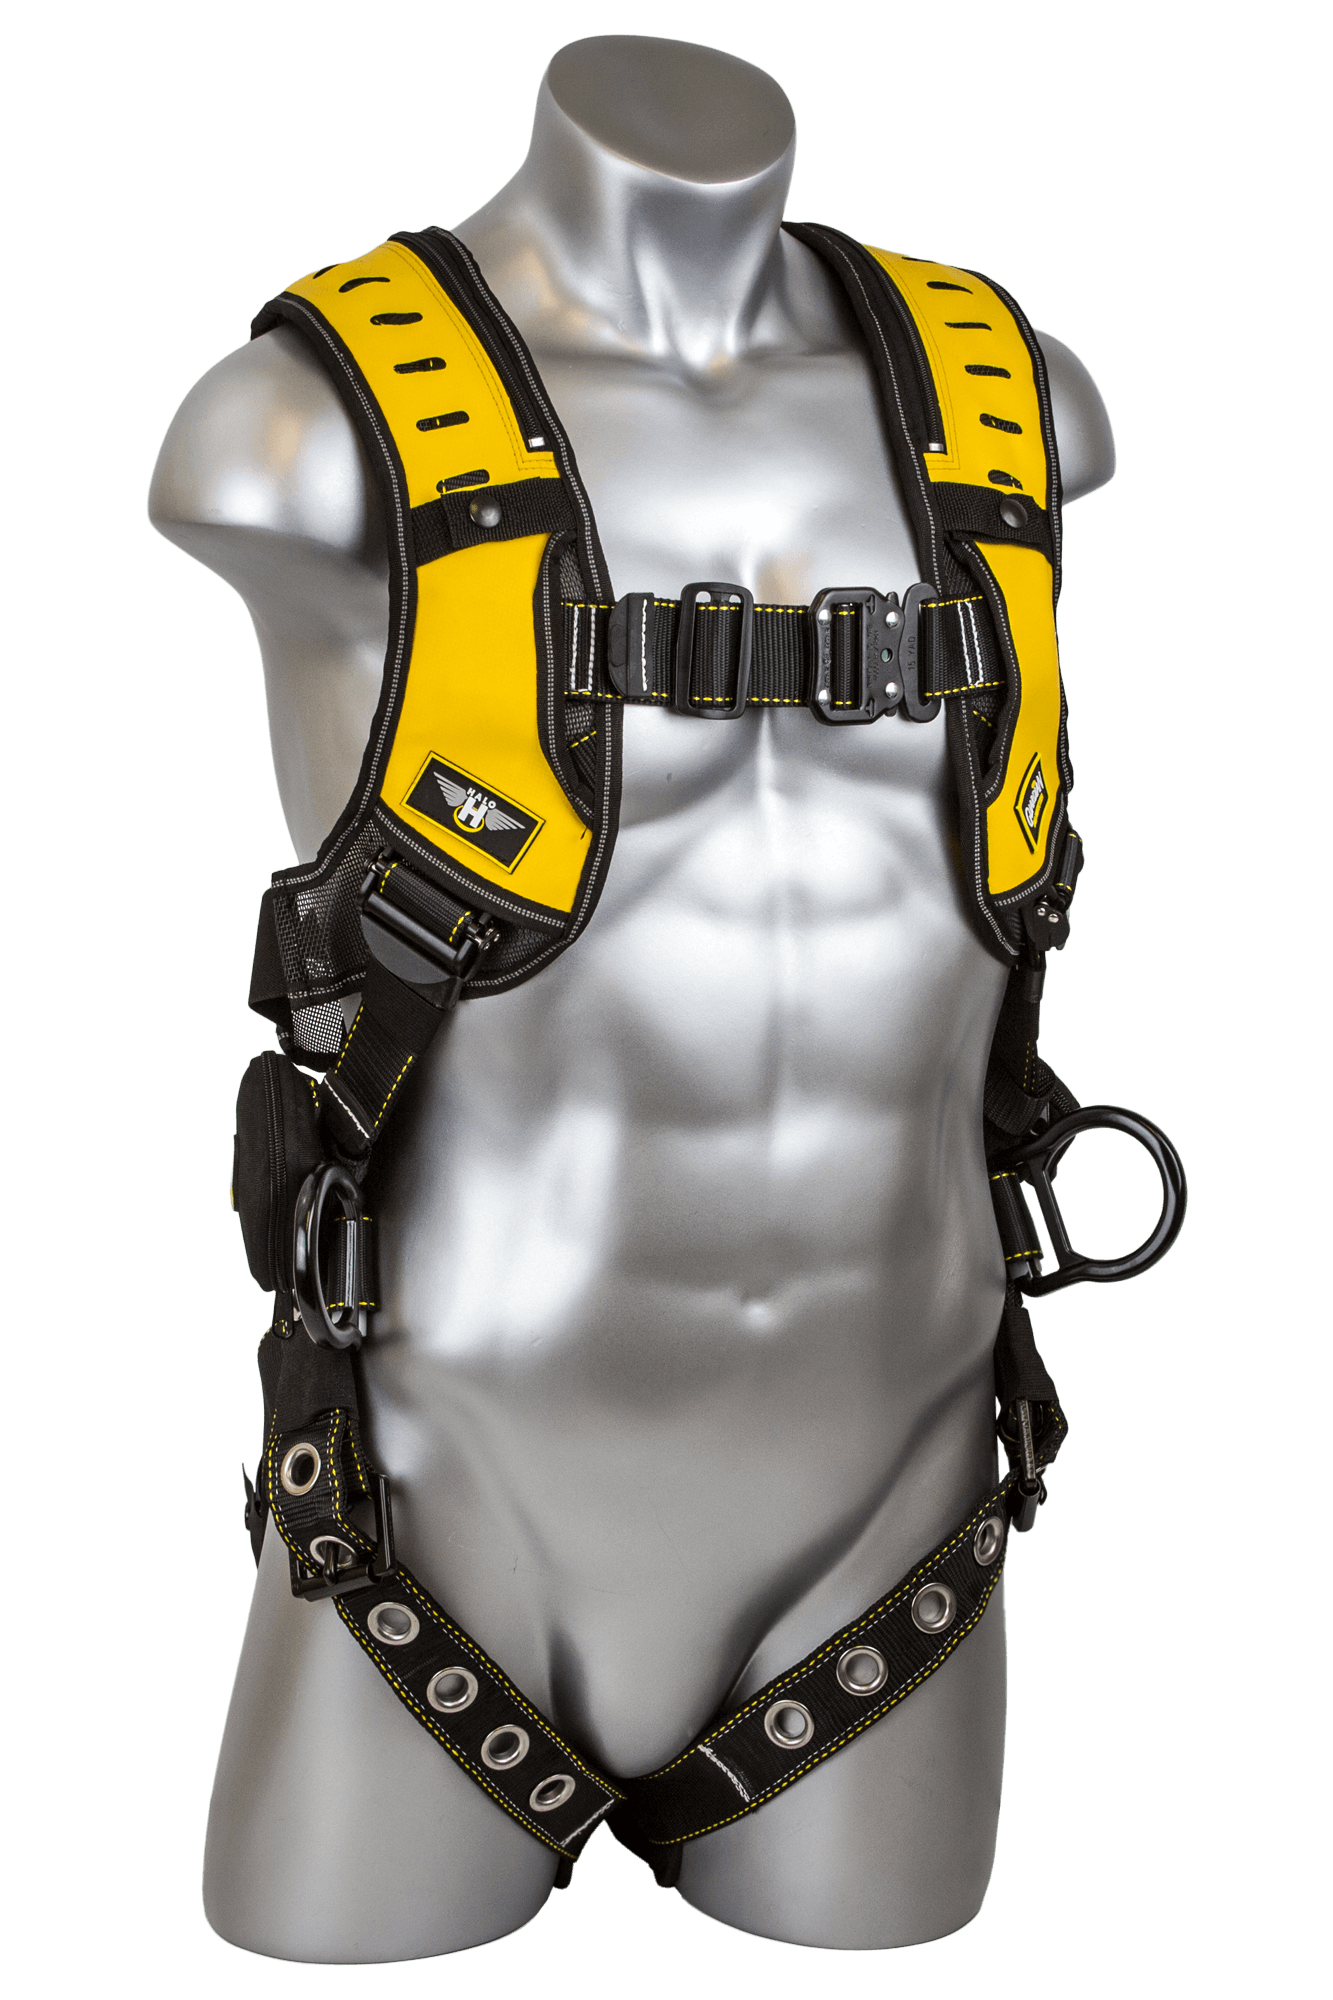 Halo Harness, Quick-Connect Chest, Tongue-Buckle Legs, Side D-Rings, Front